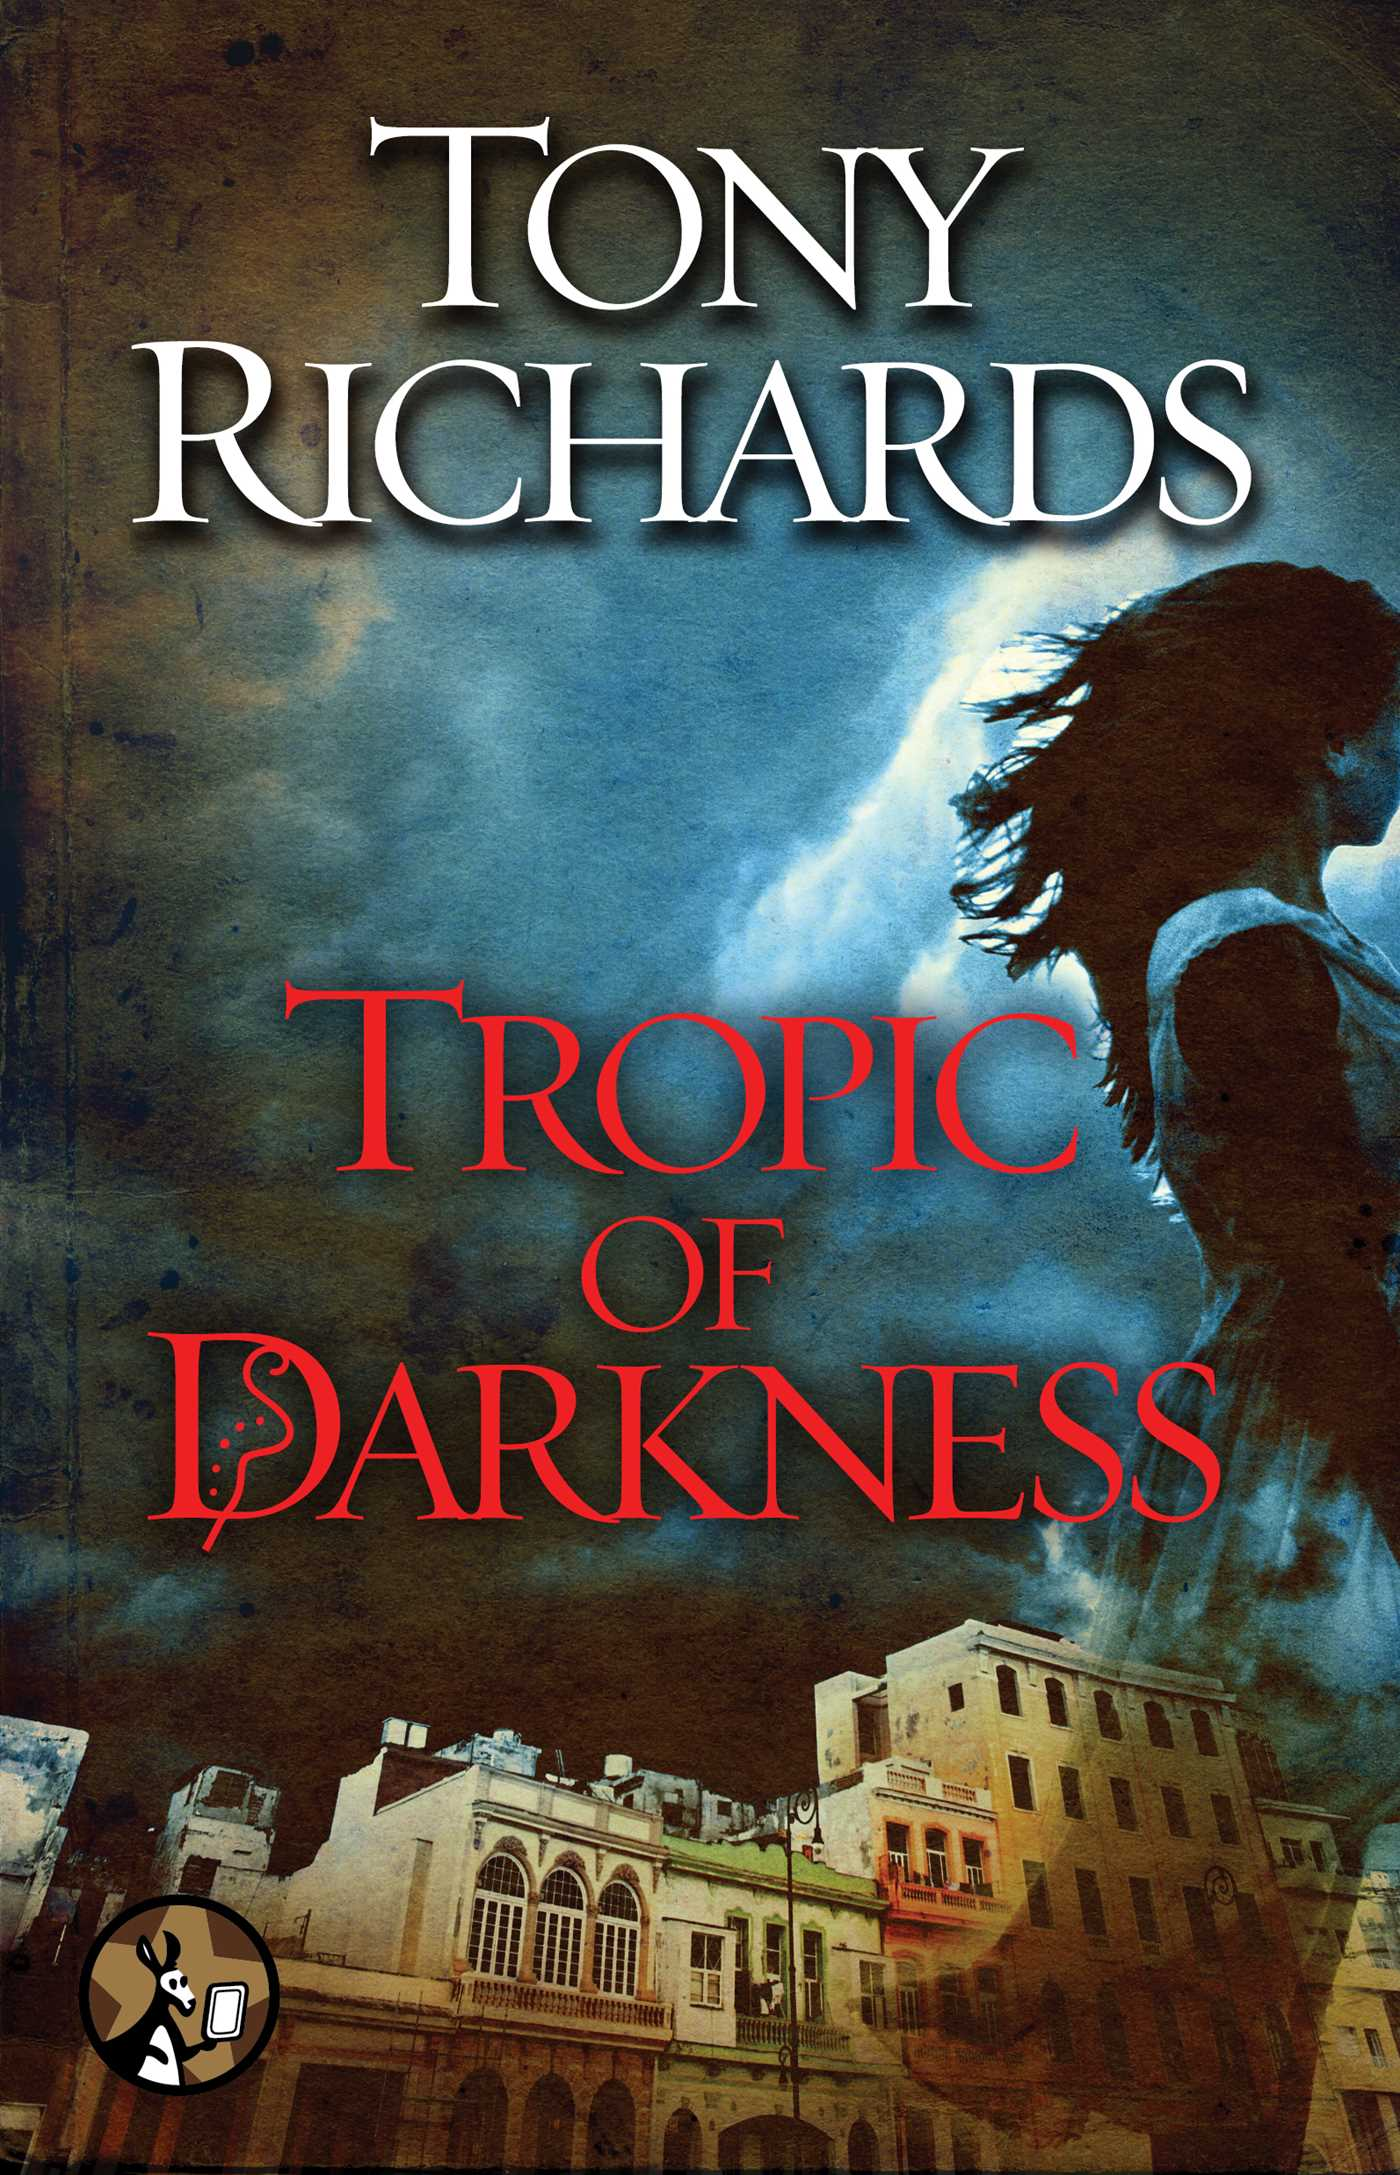 Tropic of darkness 9781476727097 hr